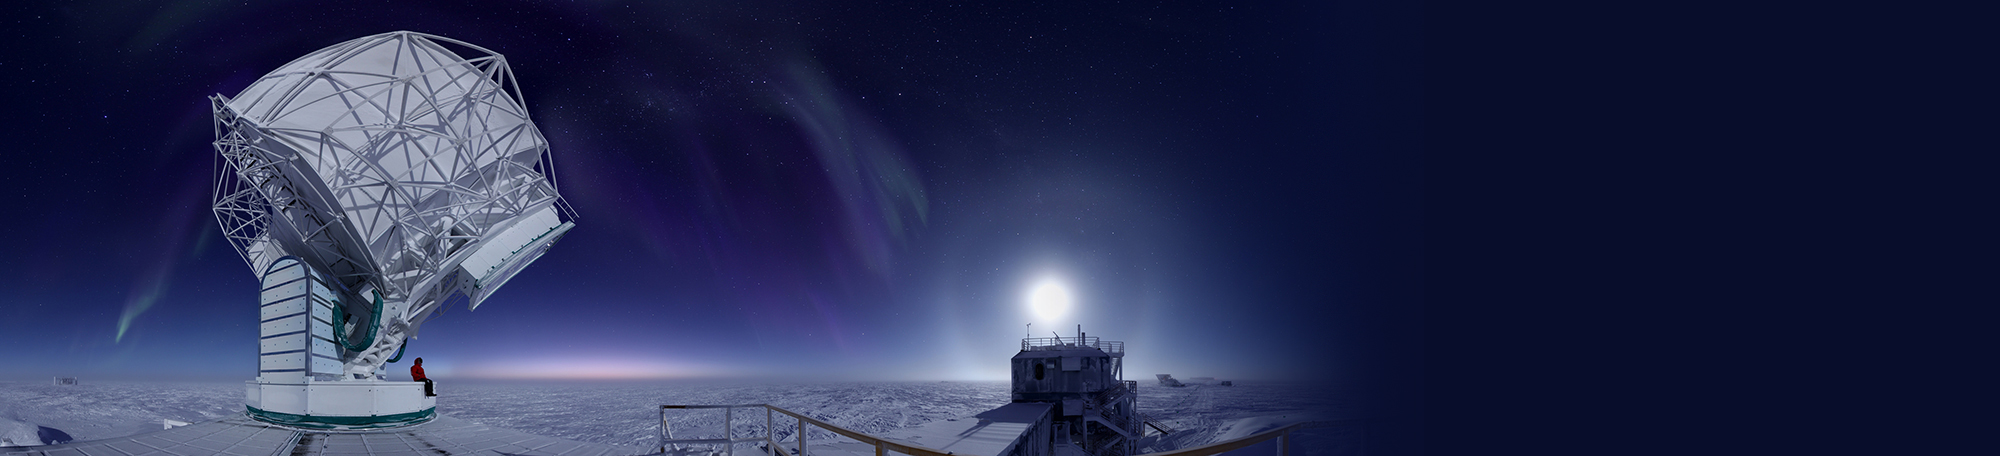 South Pole Telescope at dawn